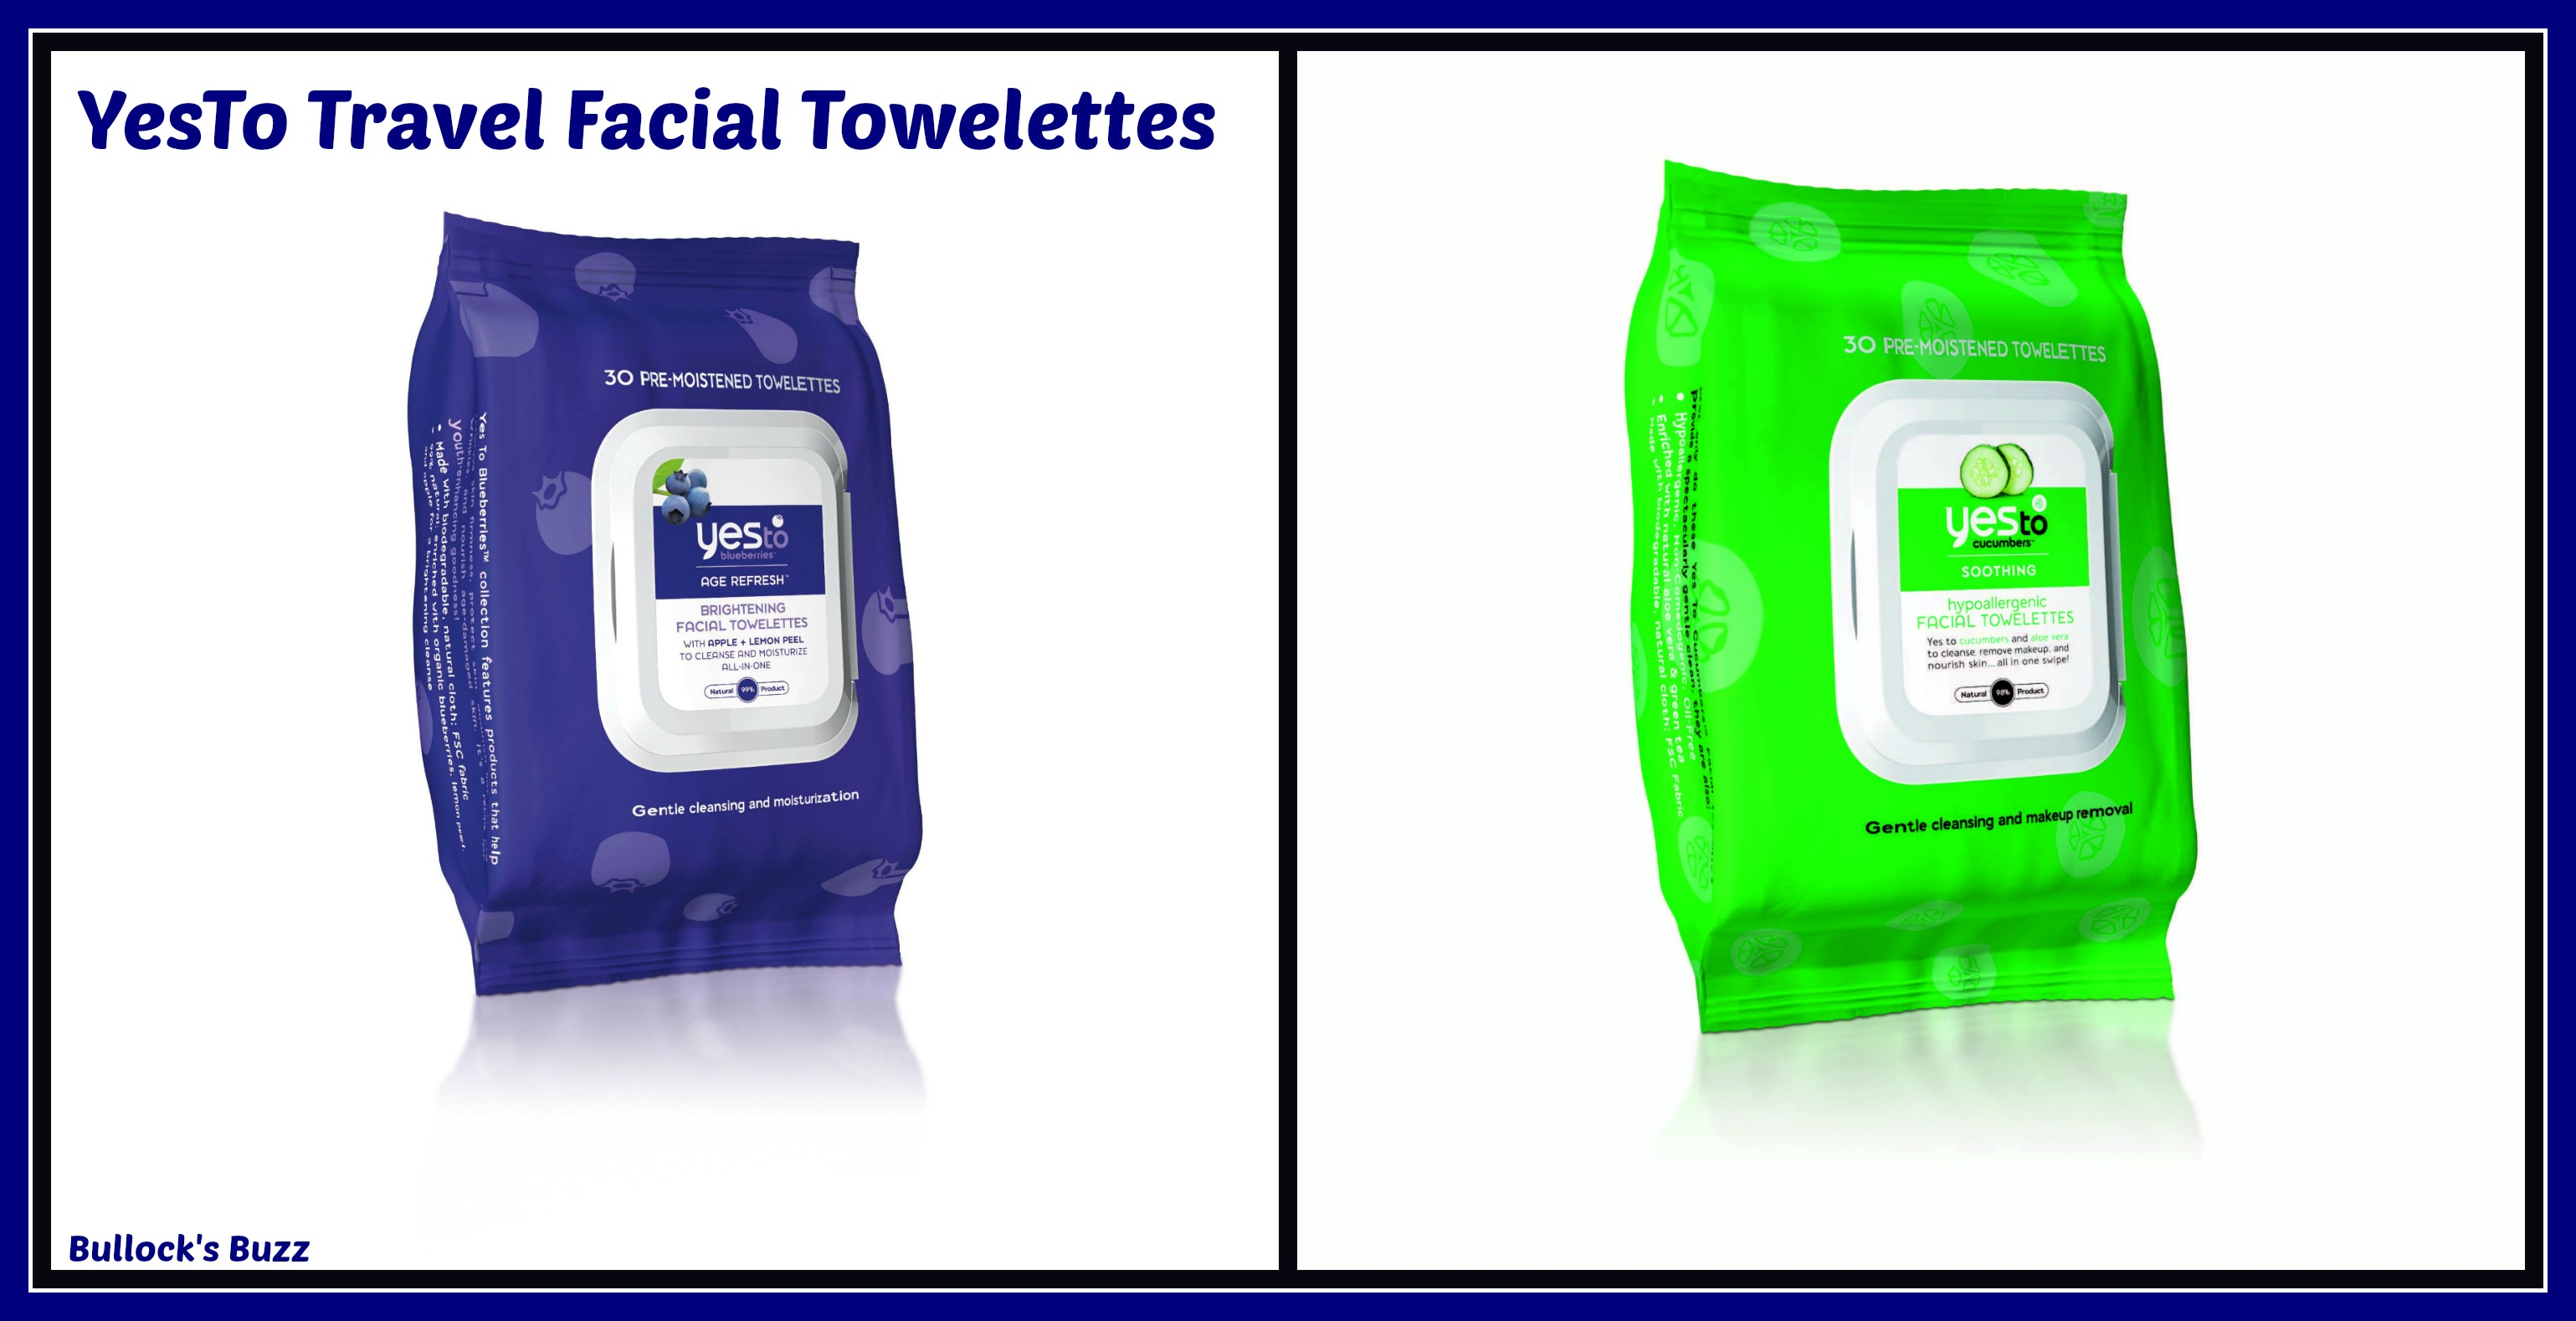 Catenya Smart Sun Travel Style Solutions YesTo Facial Wipes Travel Size